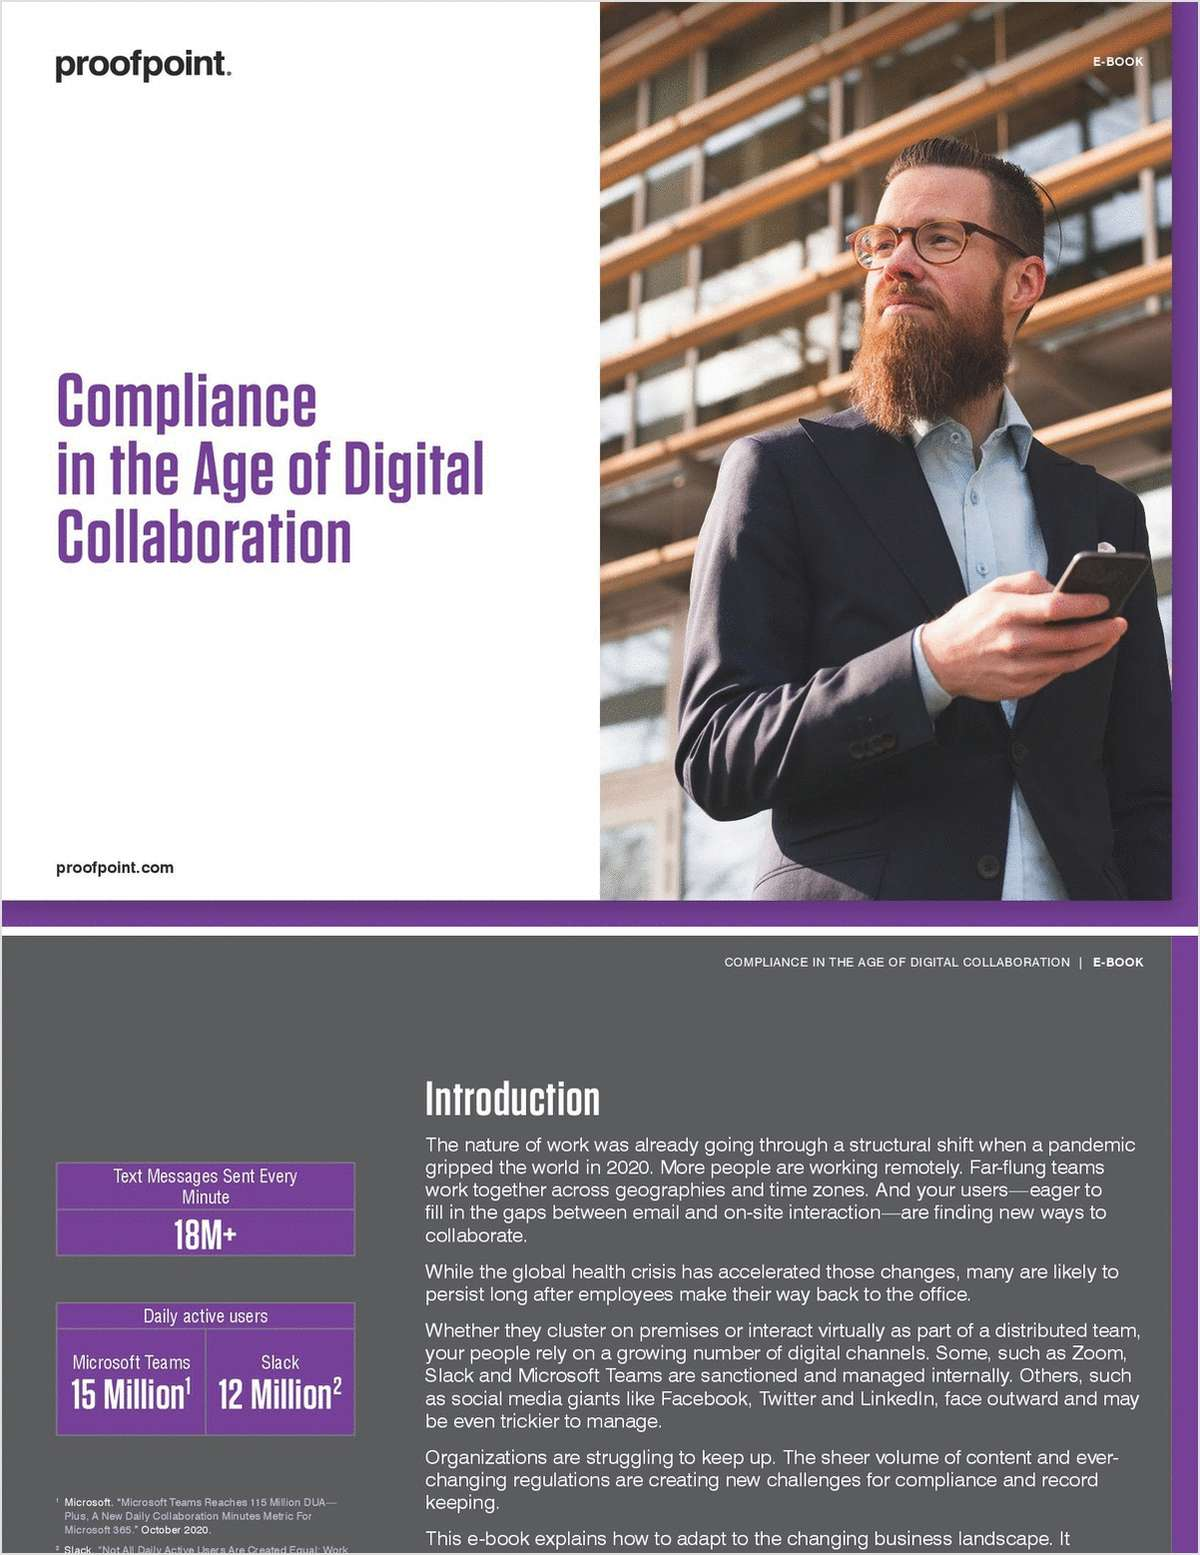 Compliance in the Age of Digital Collaboration